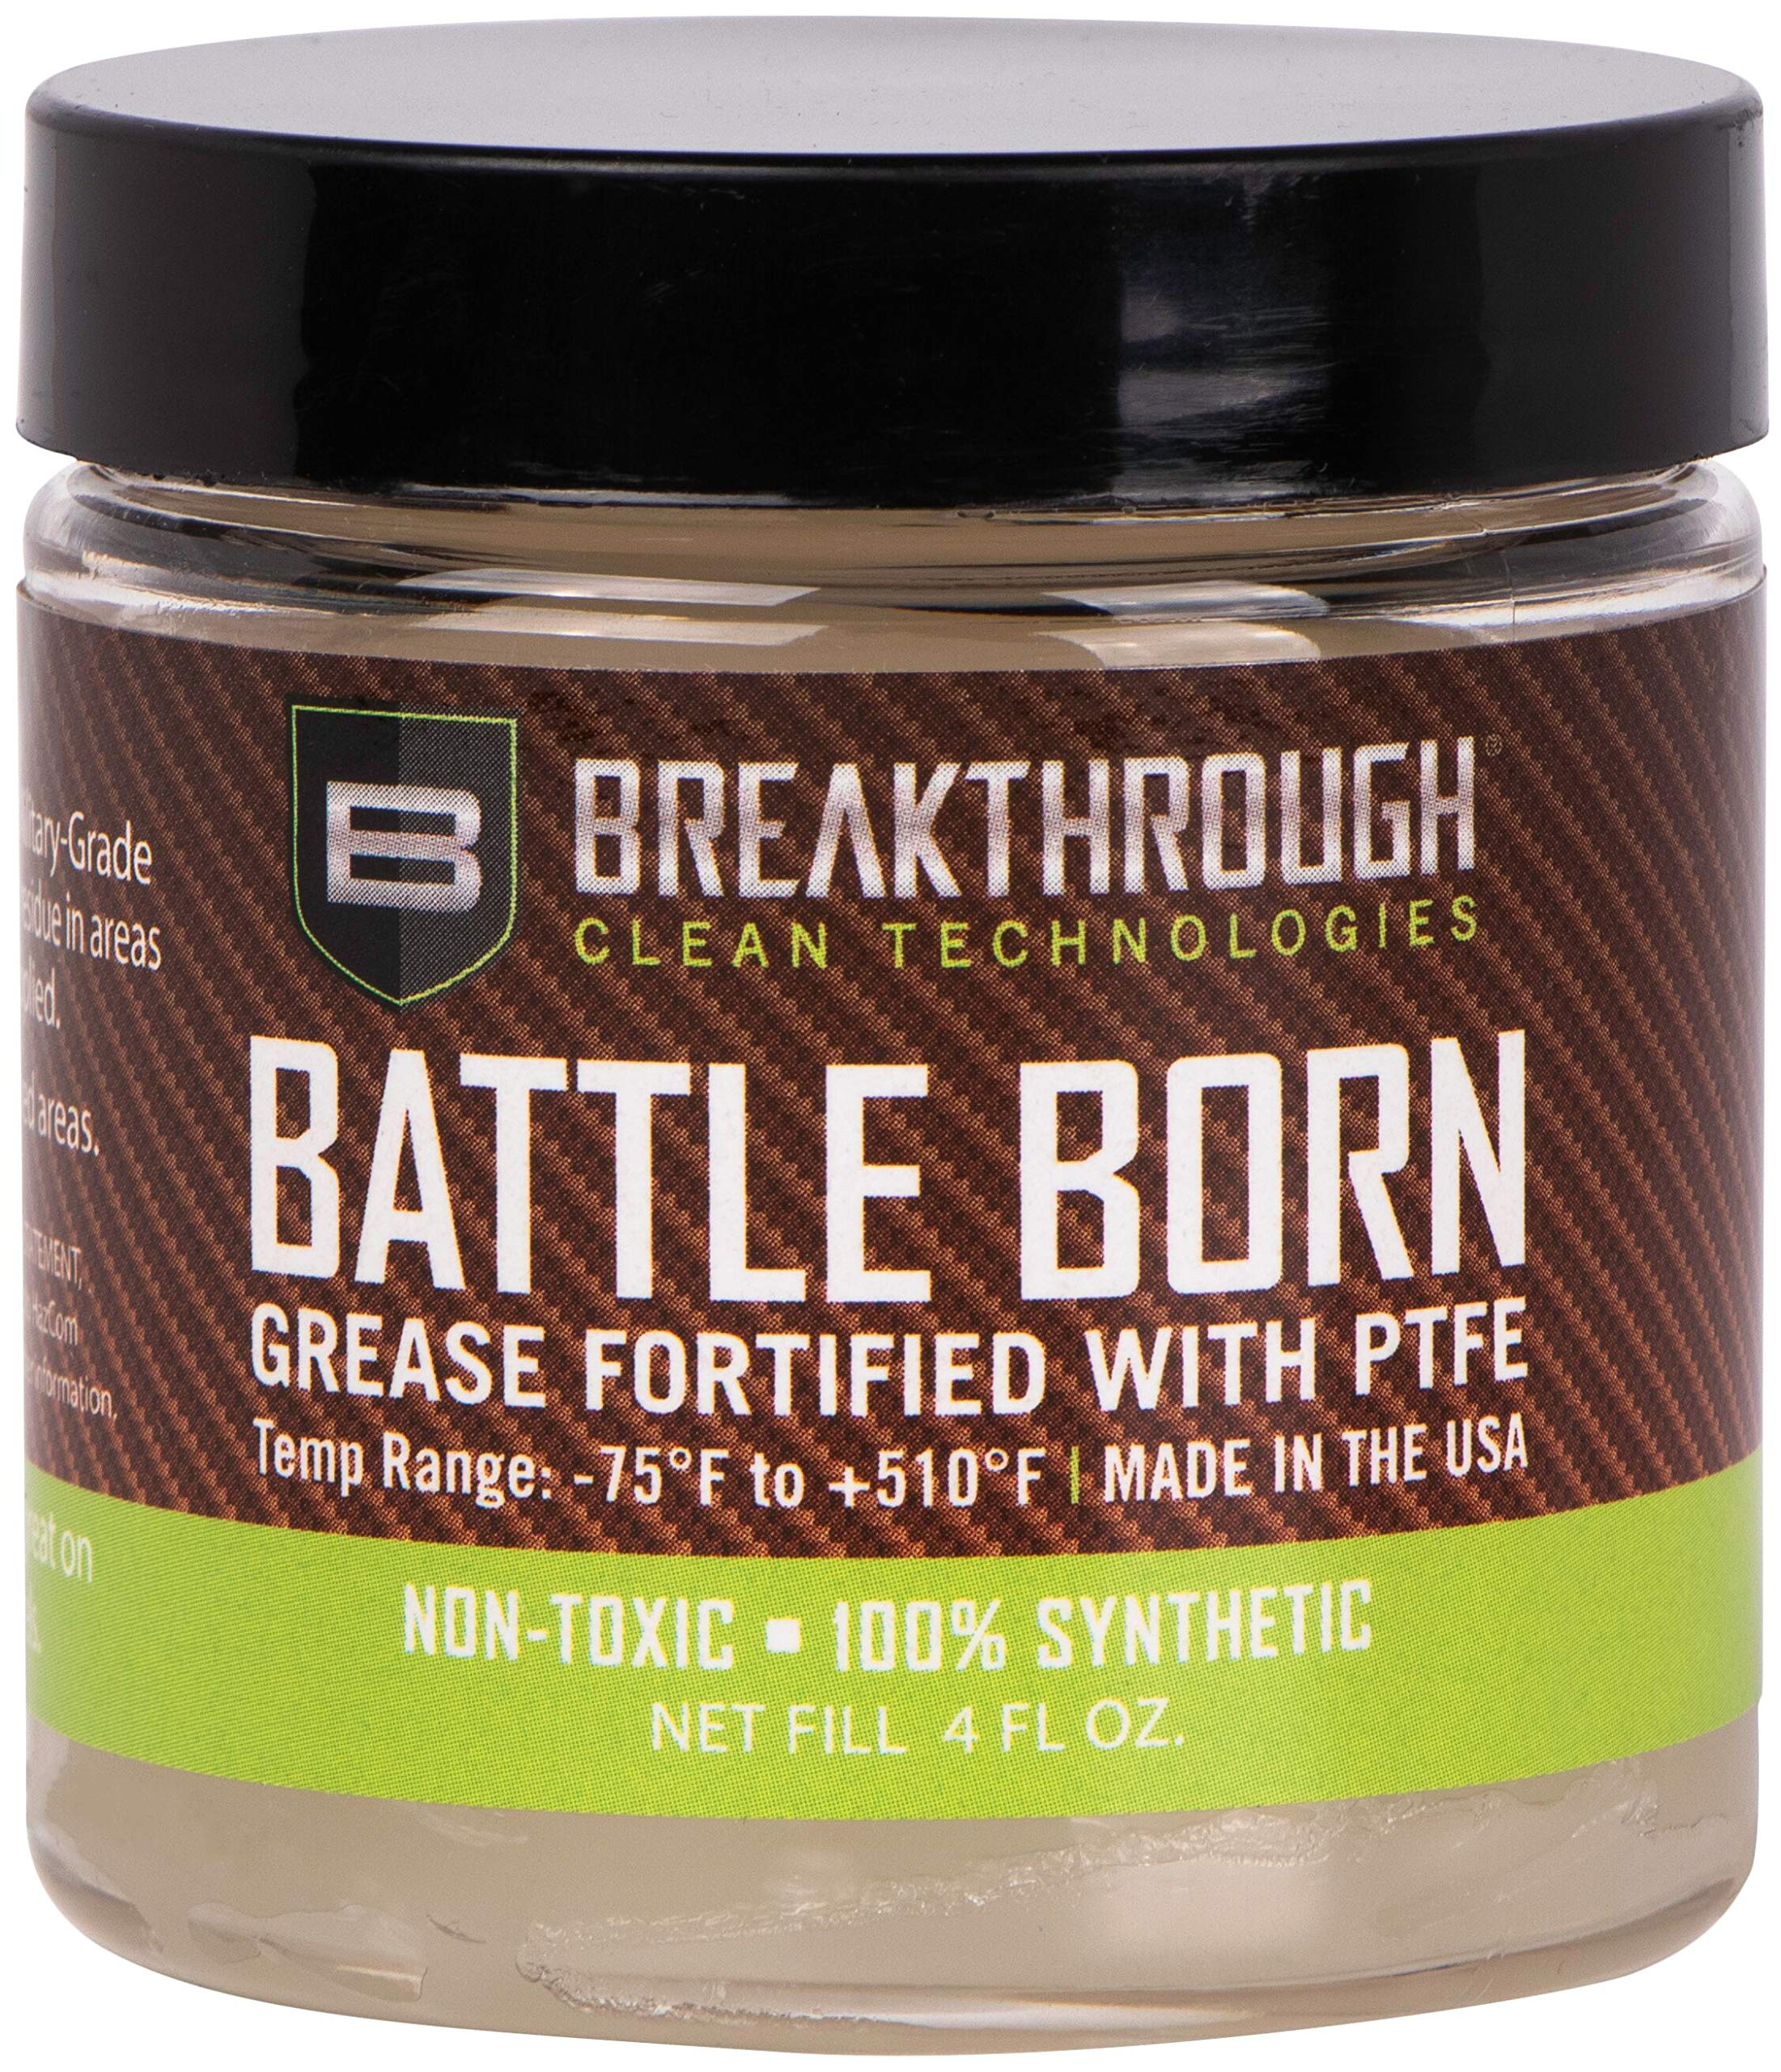 BREAKTHROUGH CLEAN TECHNOLOGIES - Battle Born Grease for Corrosion Protection (4 oz Jar)